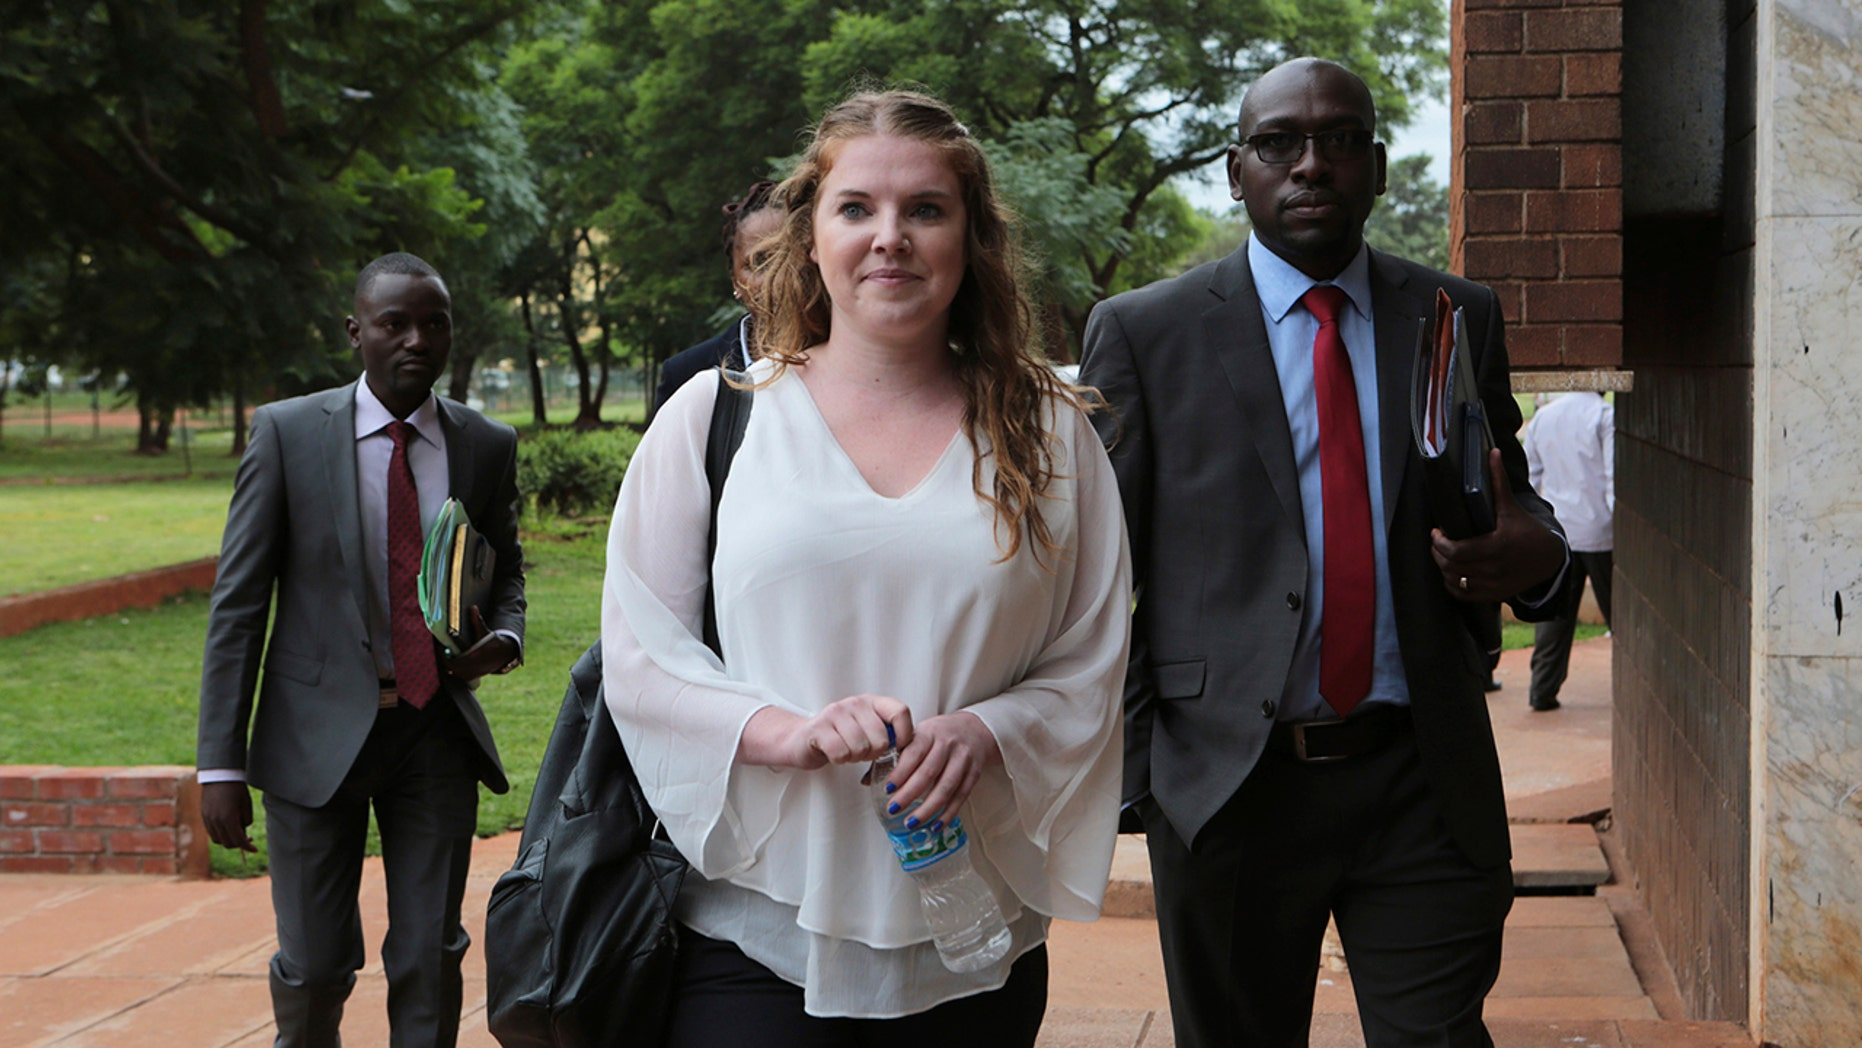 """Martha O' Donovan, 25, who was charged with subversion for allegedly describing the former Zimbabwe president as a """"sick man,"""" was freed """"for now""""."""